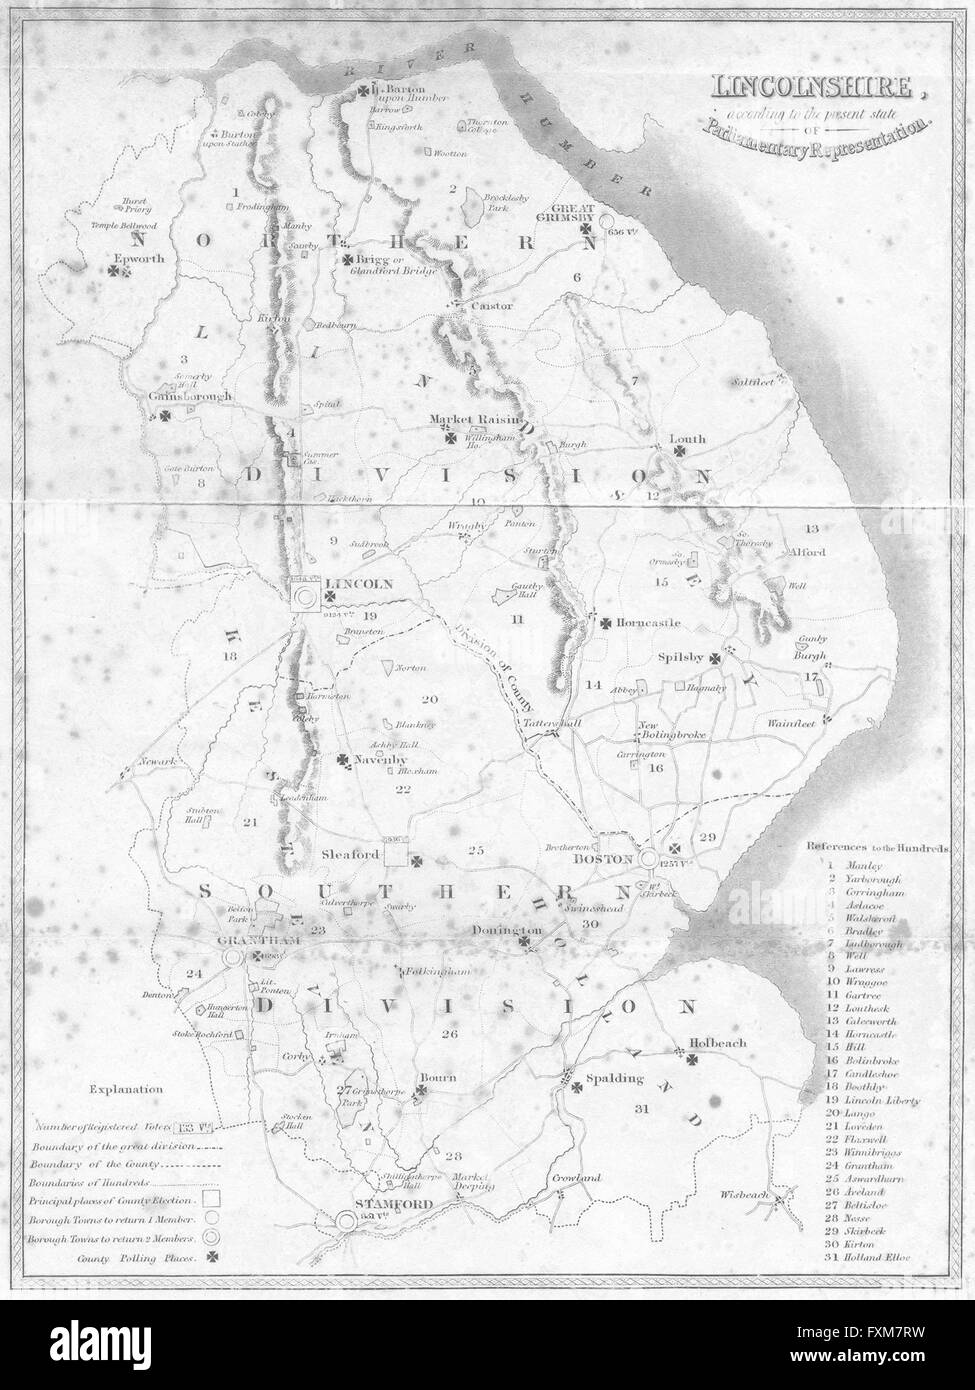 LINCOLNSHIRE: Parliamentary constituencies, 1836 antique map - Stock Image